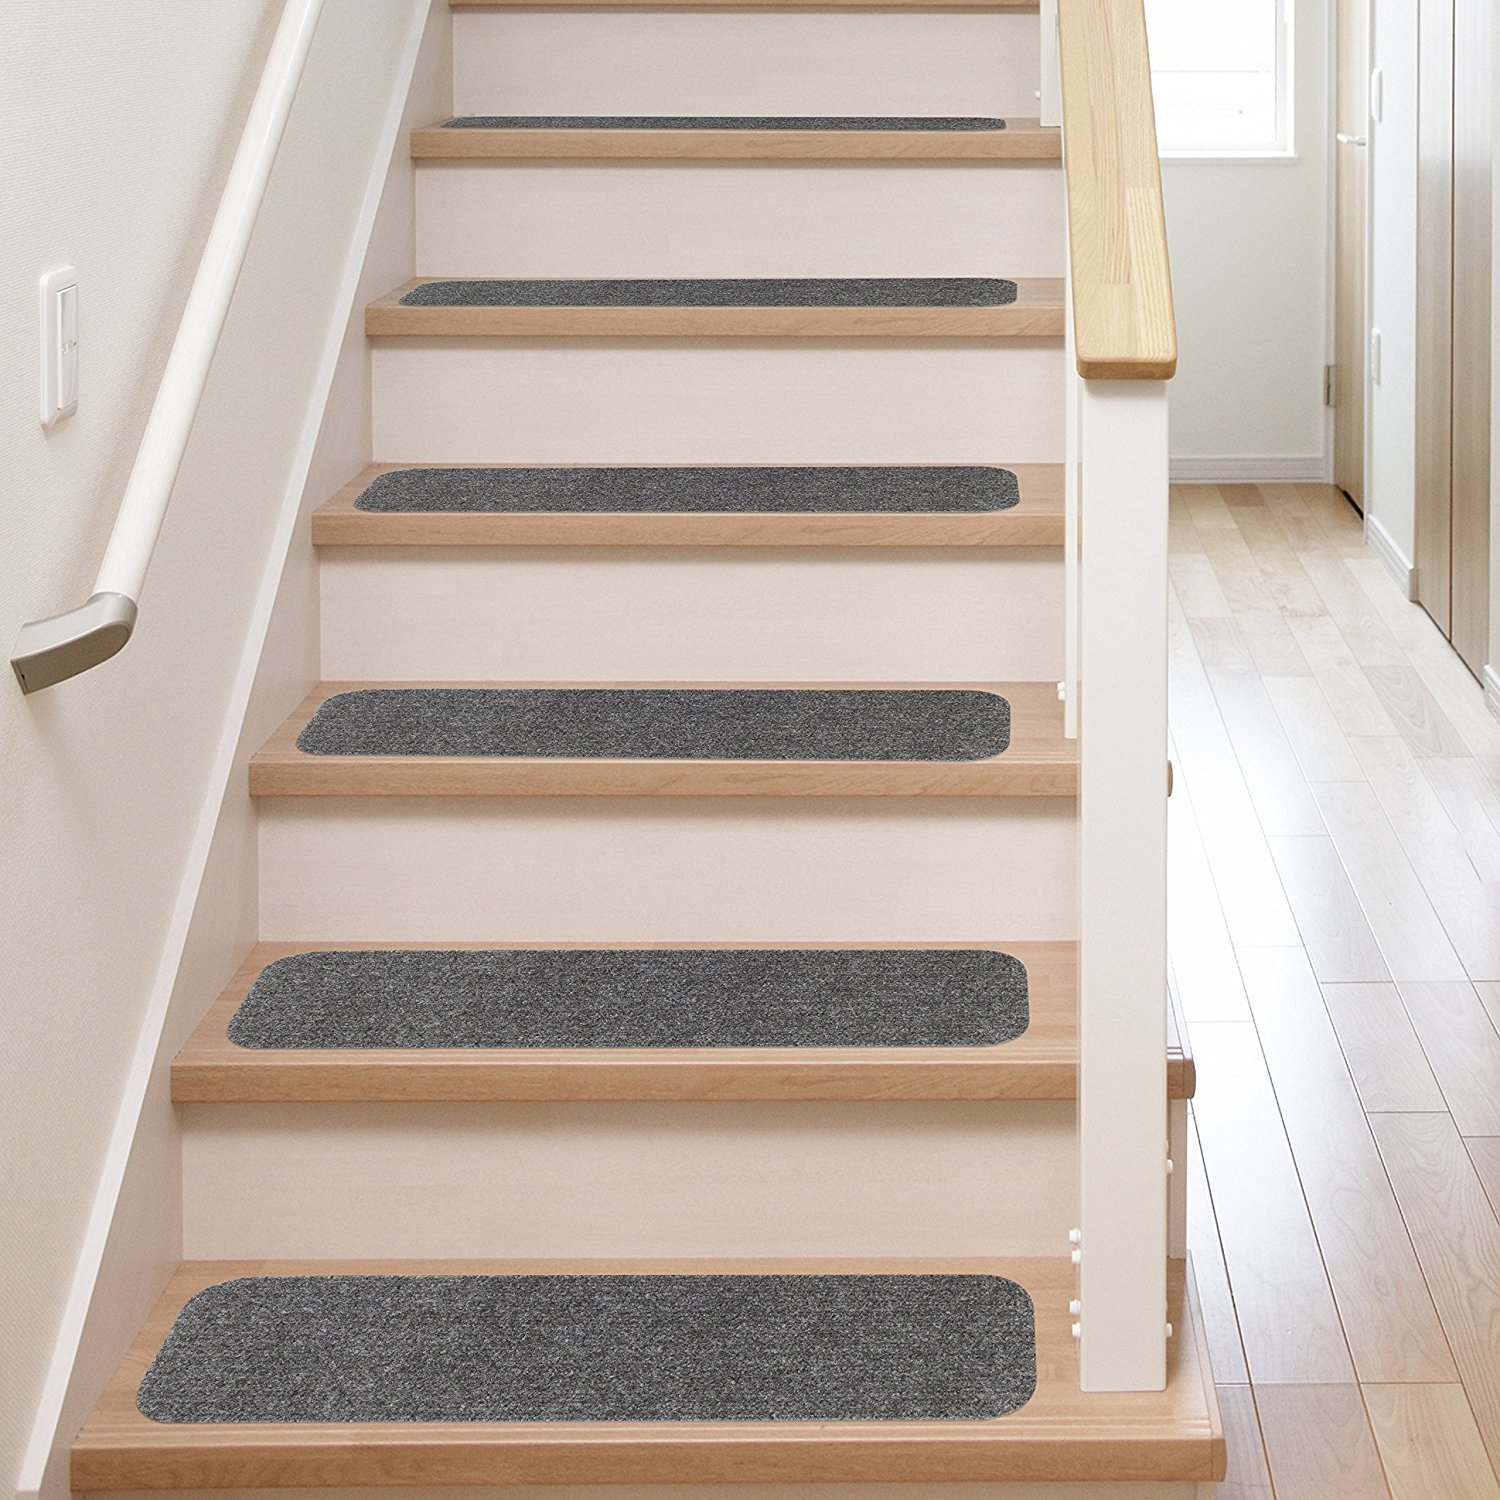 13 Stair Treads Non Slip Carpet Pads Easy Tape Installation With 8 Inch Stair Tread Rugs (#1 of 20)